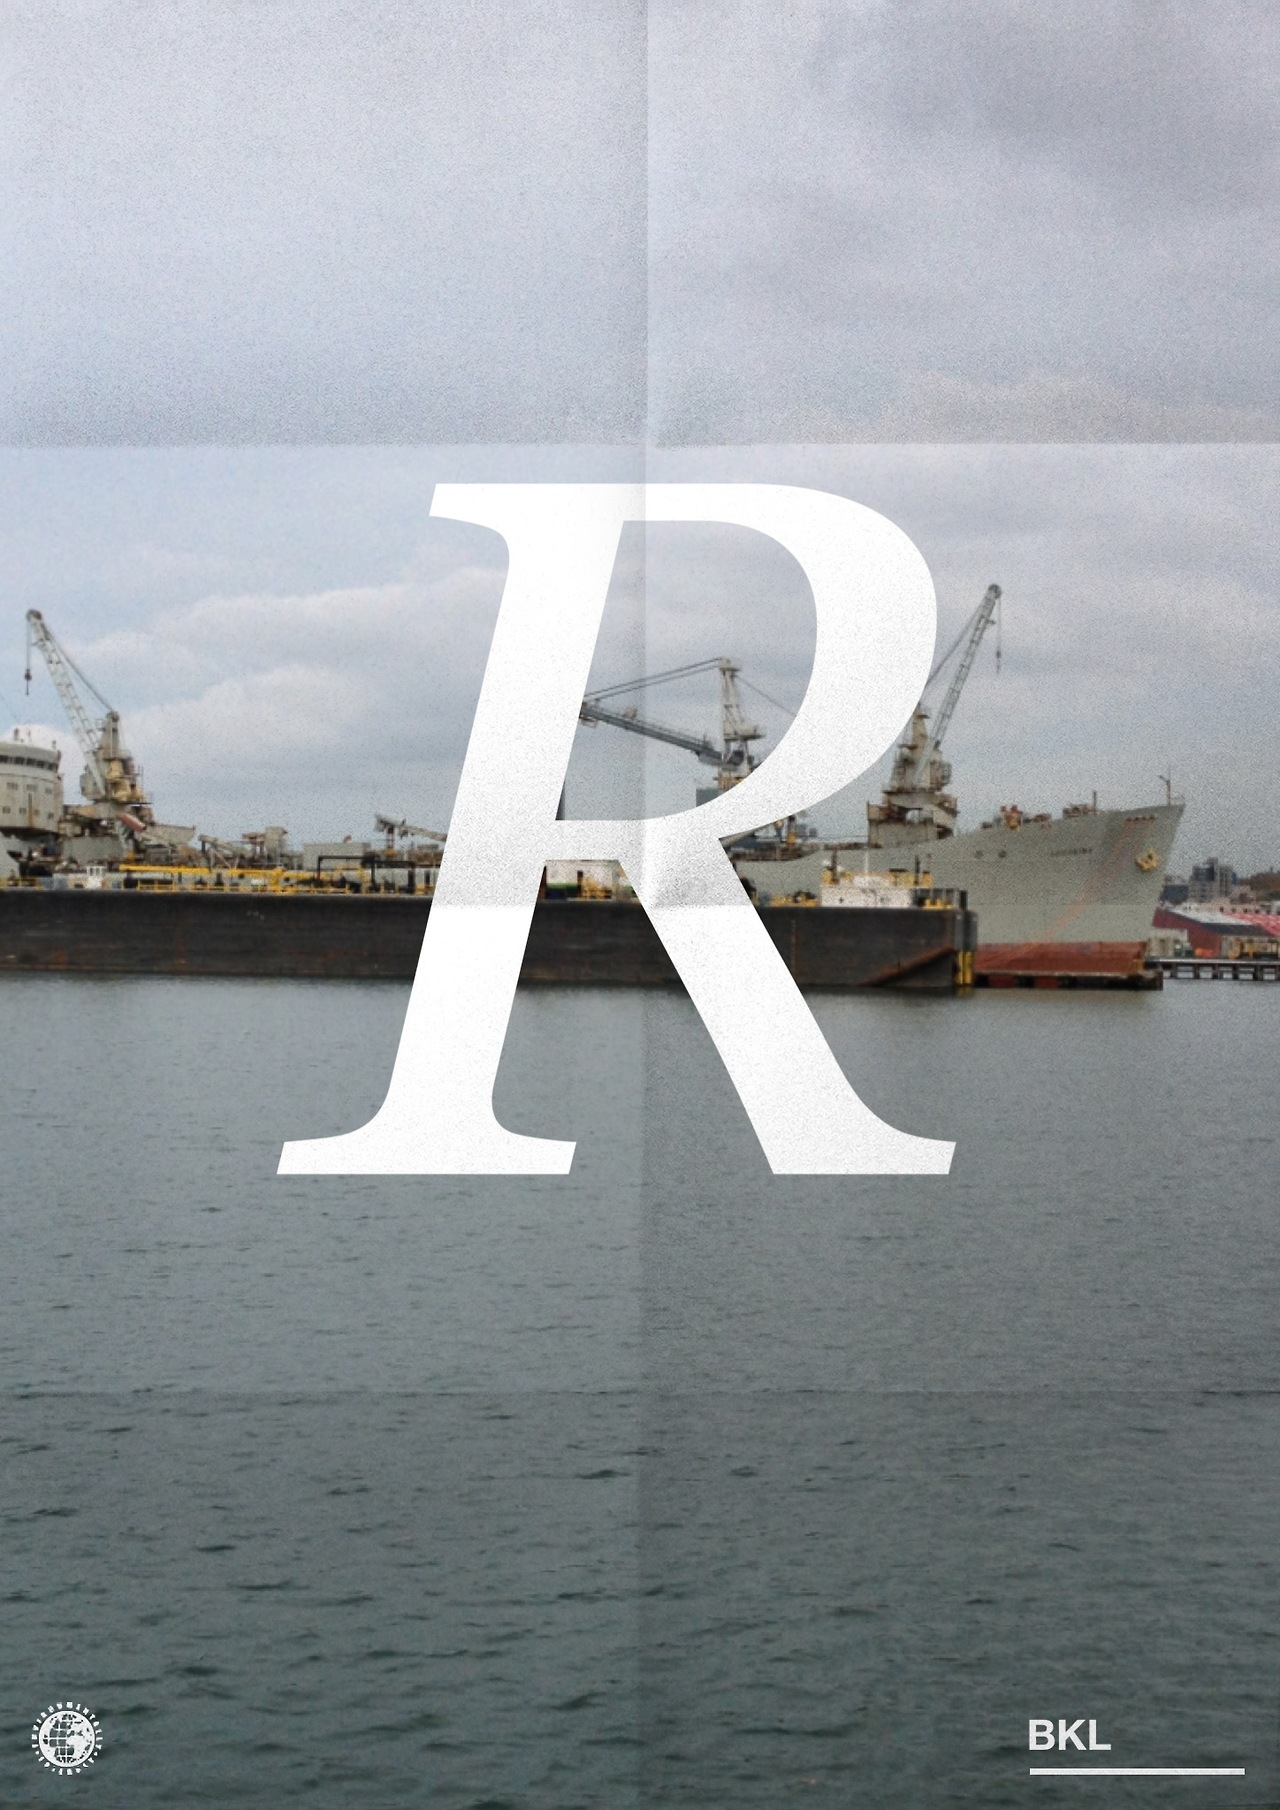 R for Red Hook - #peppersearching #pepper #bklyn #type #boats